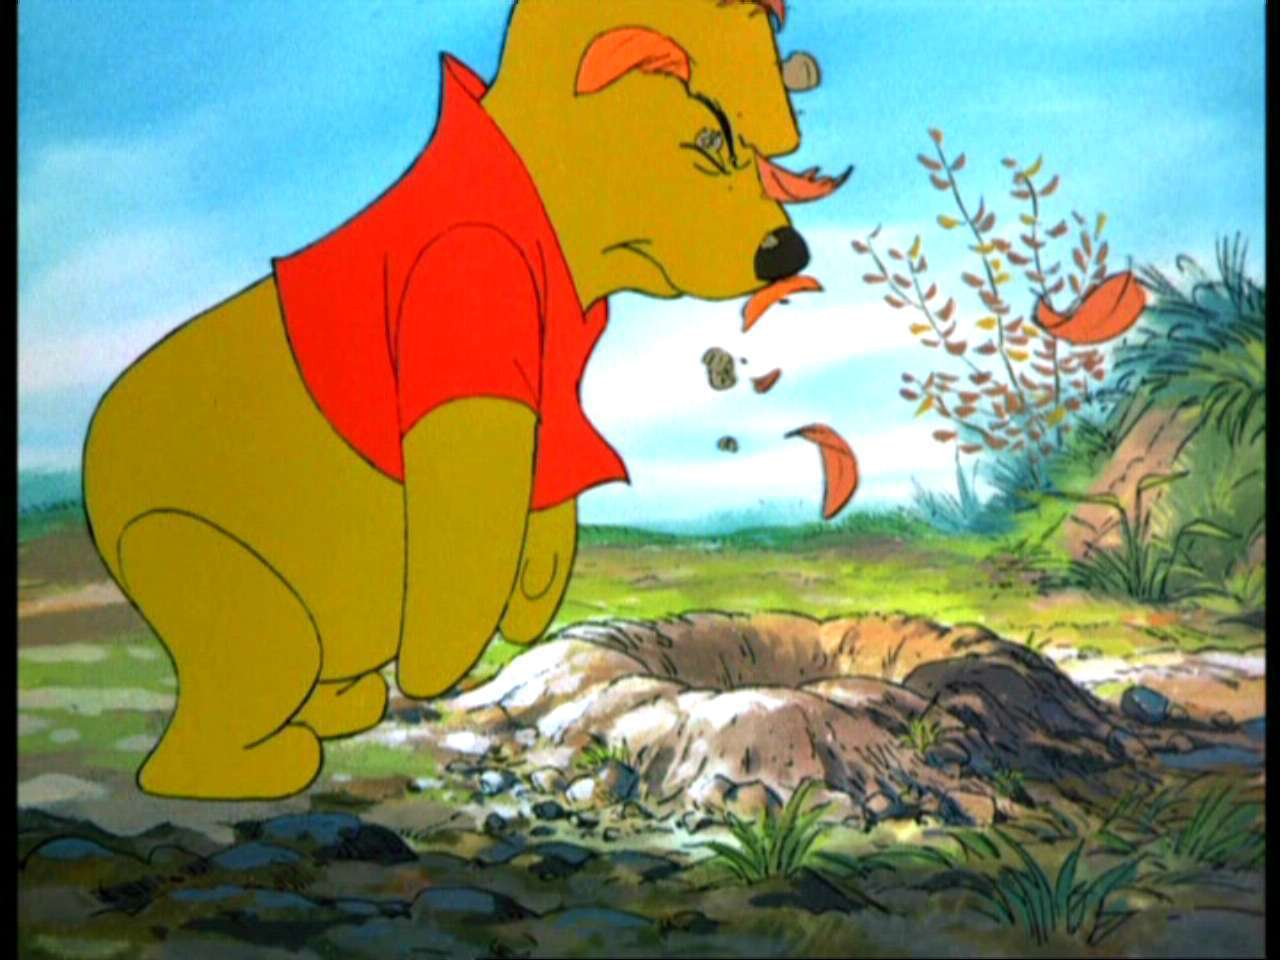 Winnie the Pooh and the Blustery دن